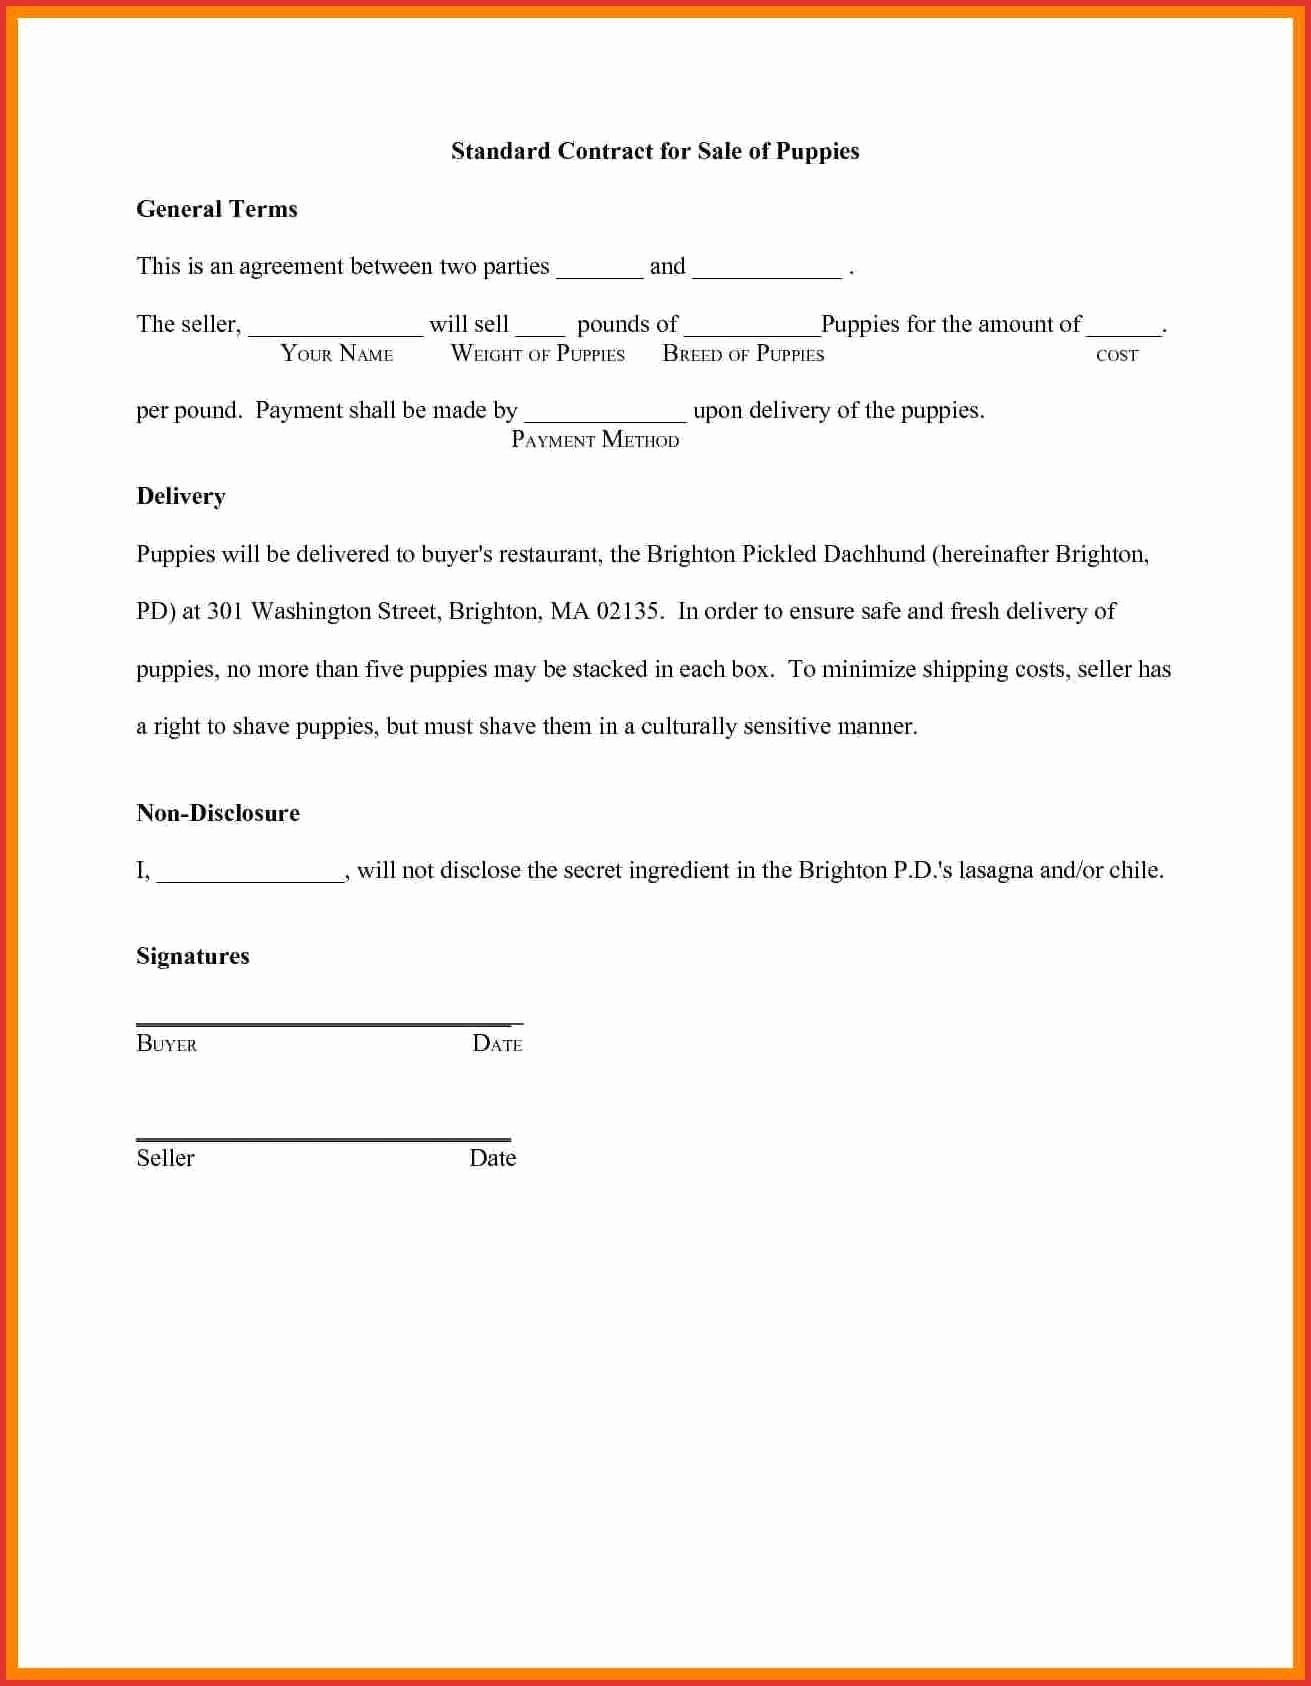 25+ Contract specialist resume sample federal Format